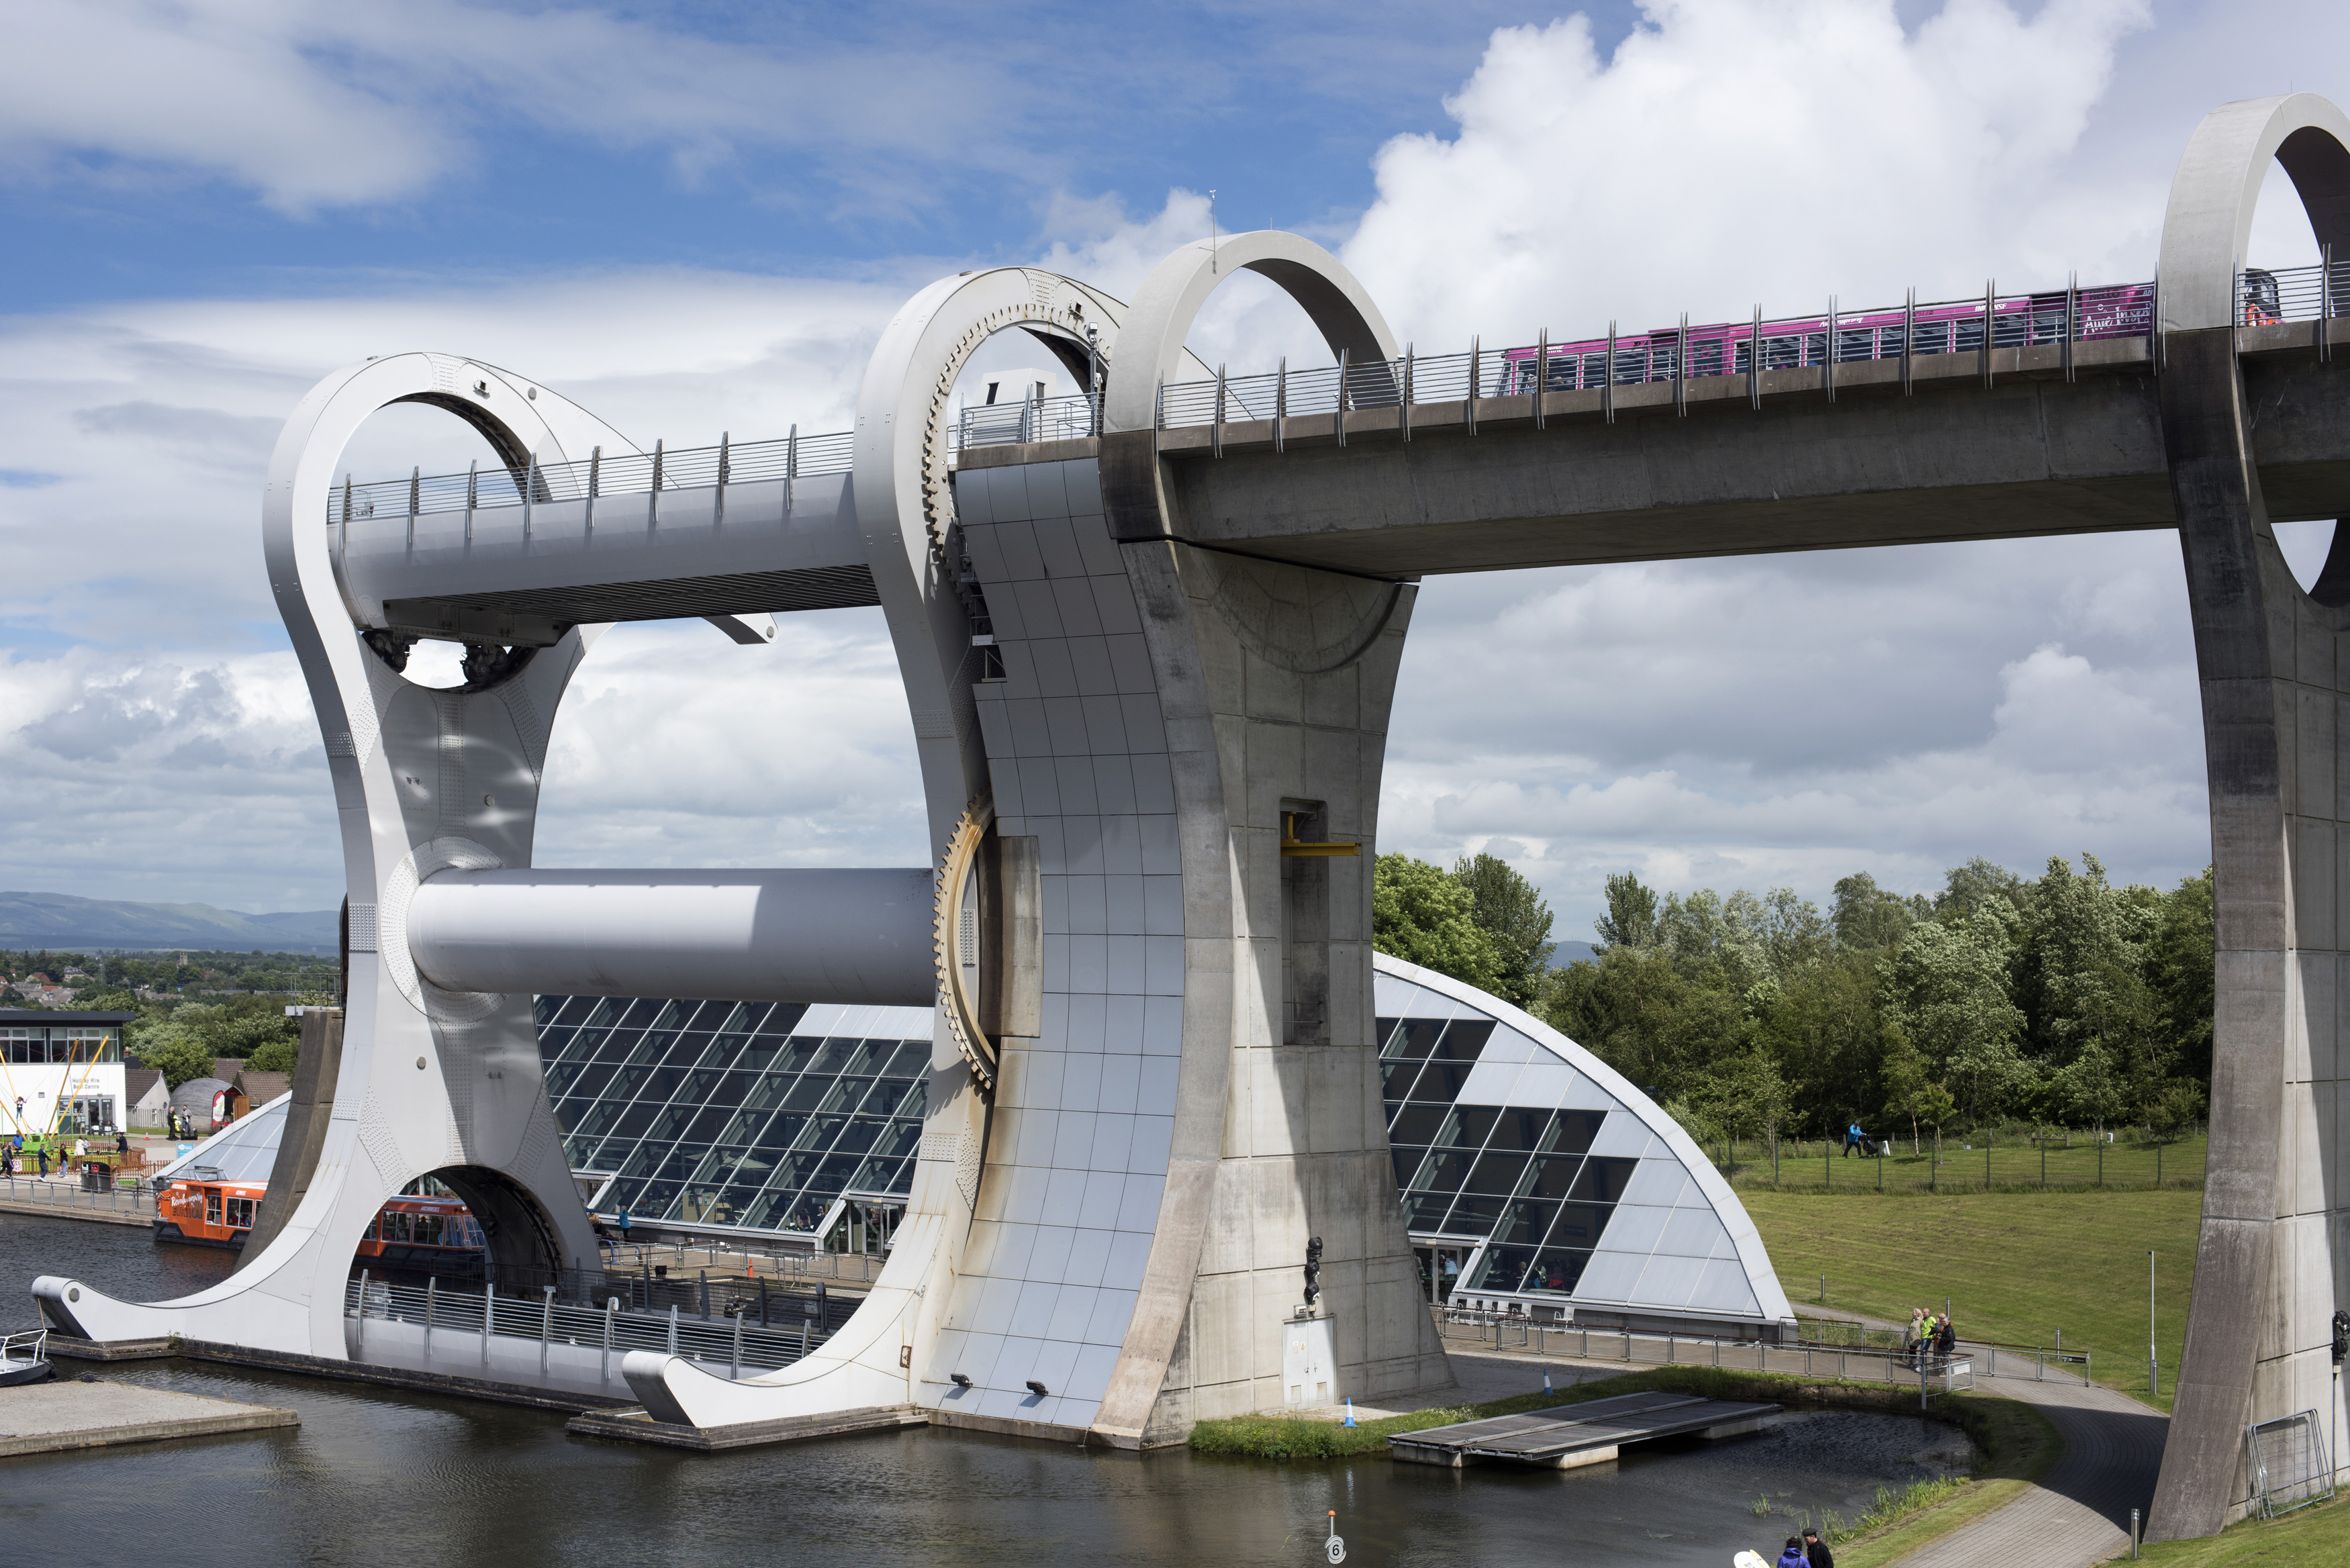 High angle view on main circular viaduct sections of famous Falkirk Wheel in Scotland